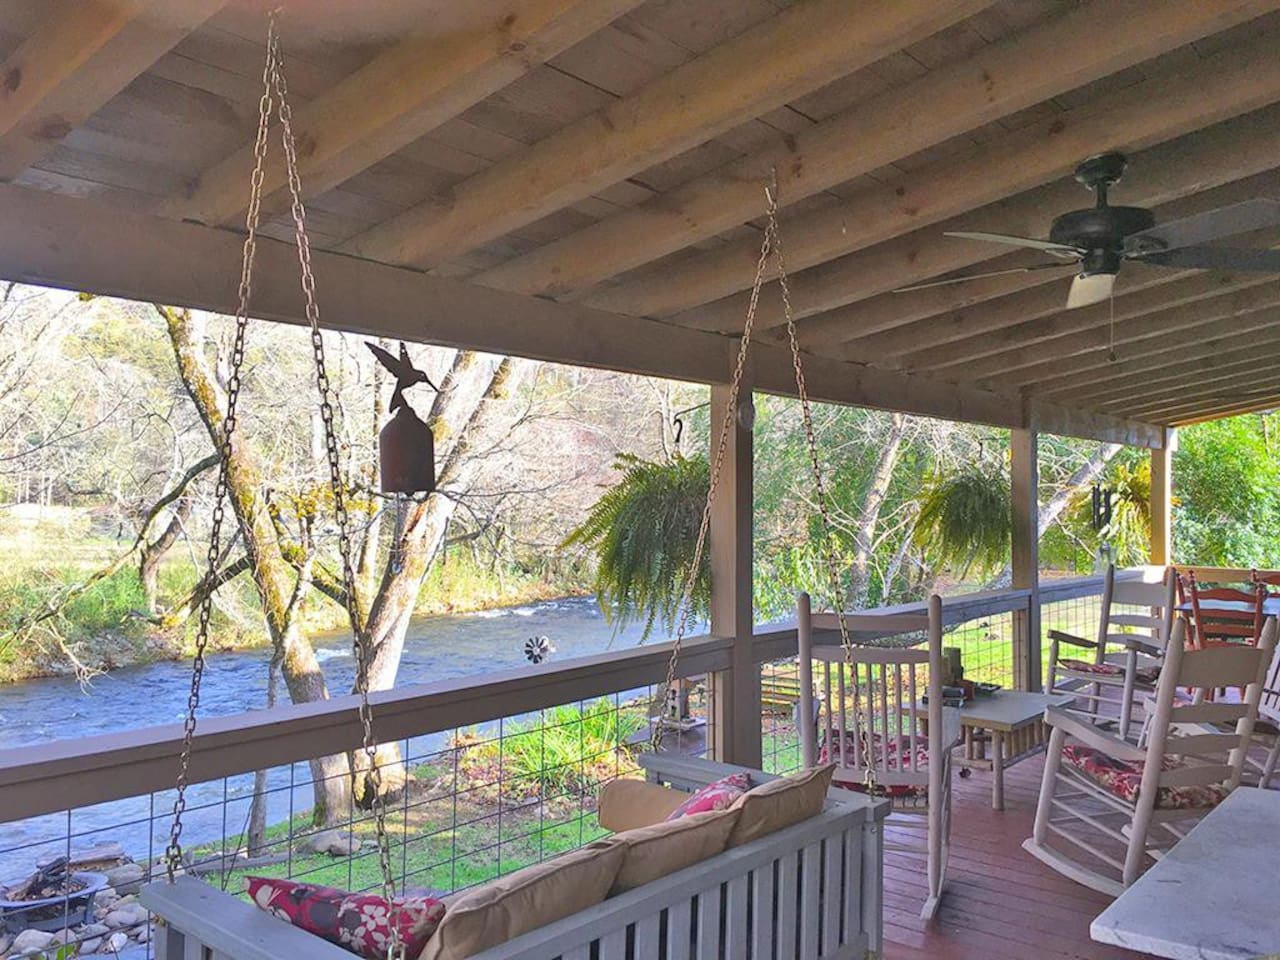 Picture yourself sitting here on the back porch swing or rockers enjoying Deep Creek and the birds!